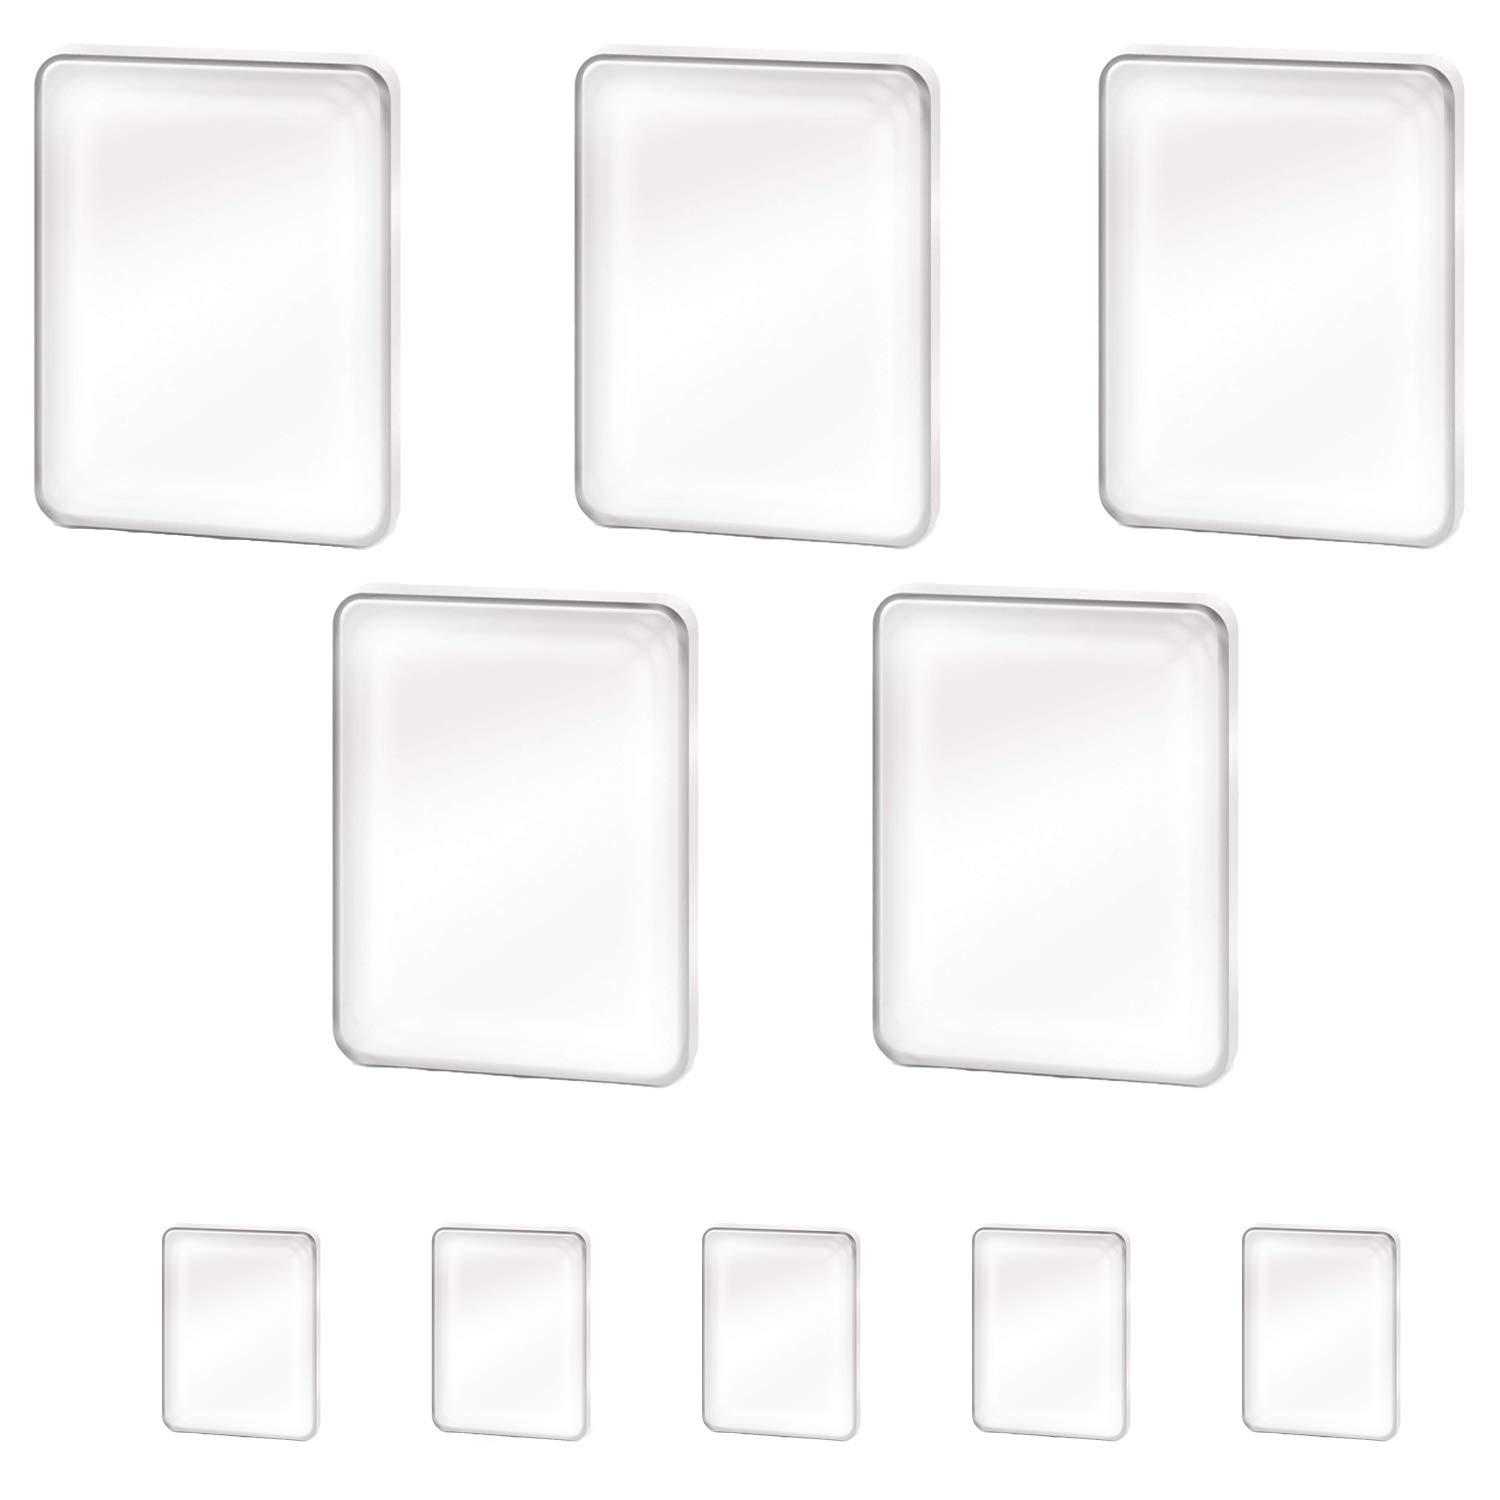 Super Sticky Gel Gripping Pads 10 Pack Reusable